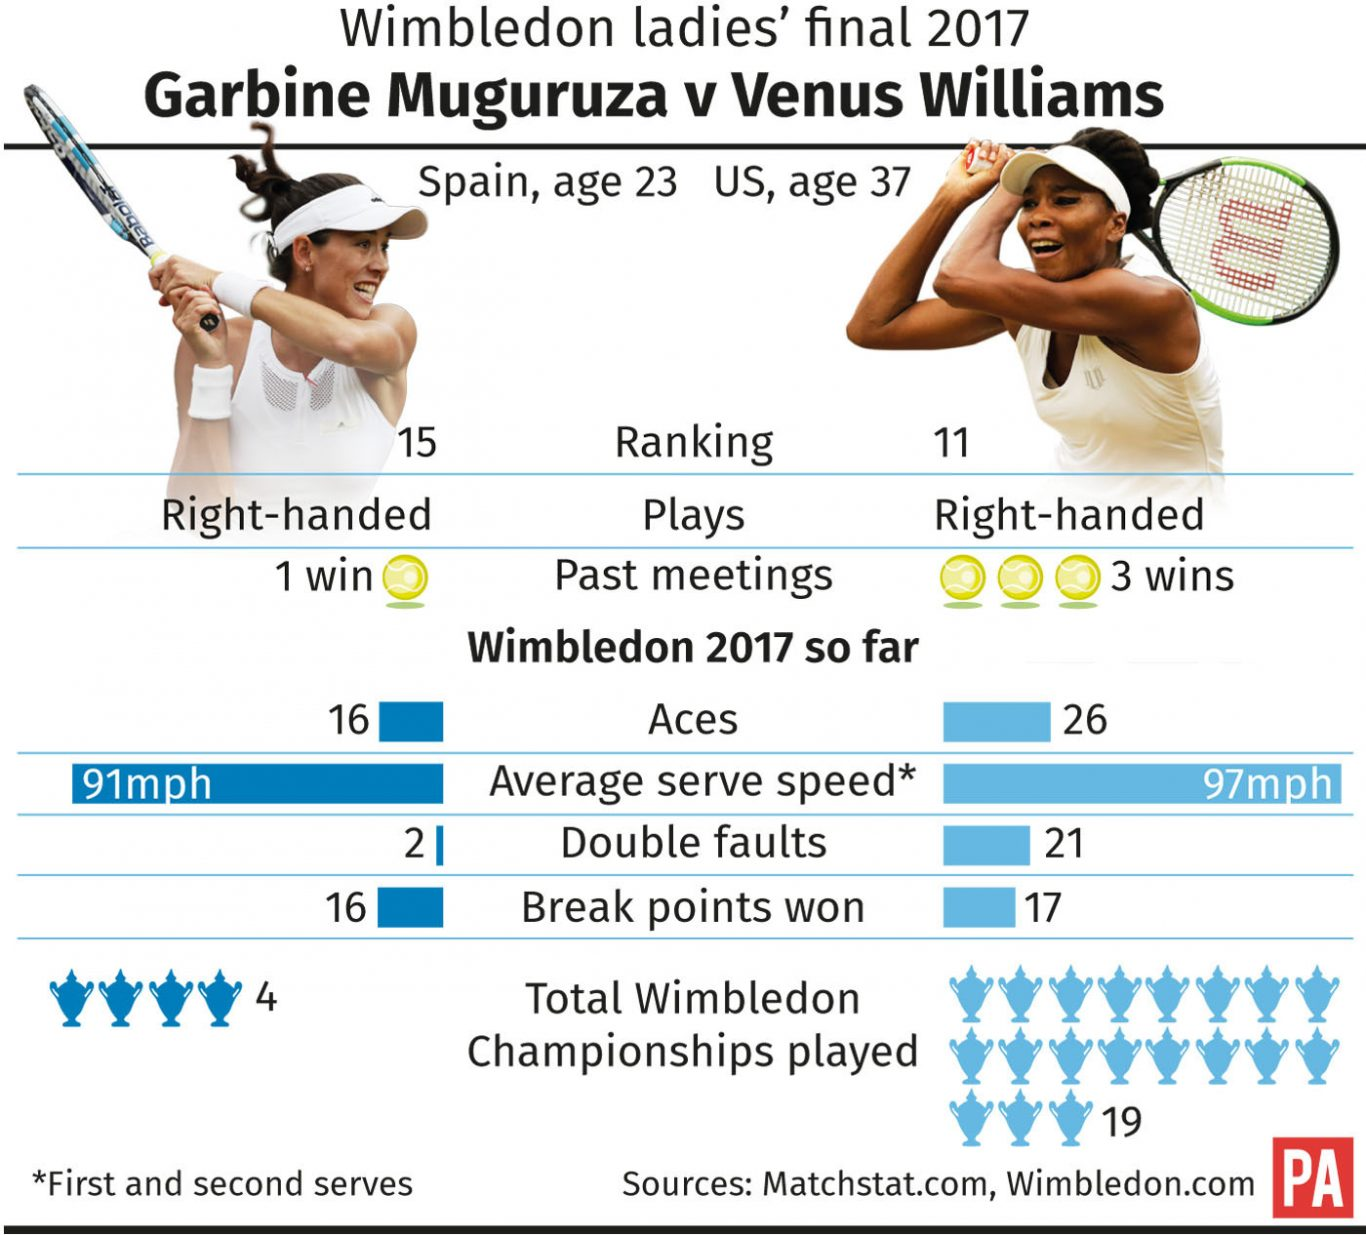 Wimbledon 2017 women's final: Venus Williams vs. Garbiñe Muguruza